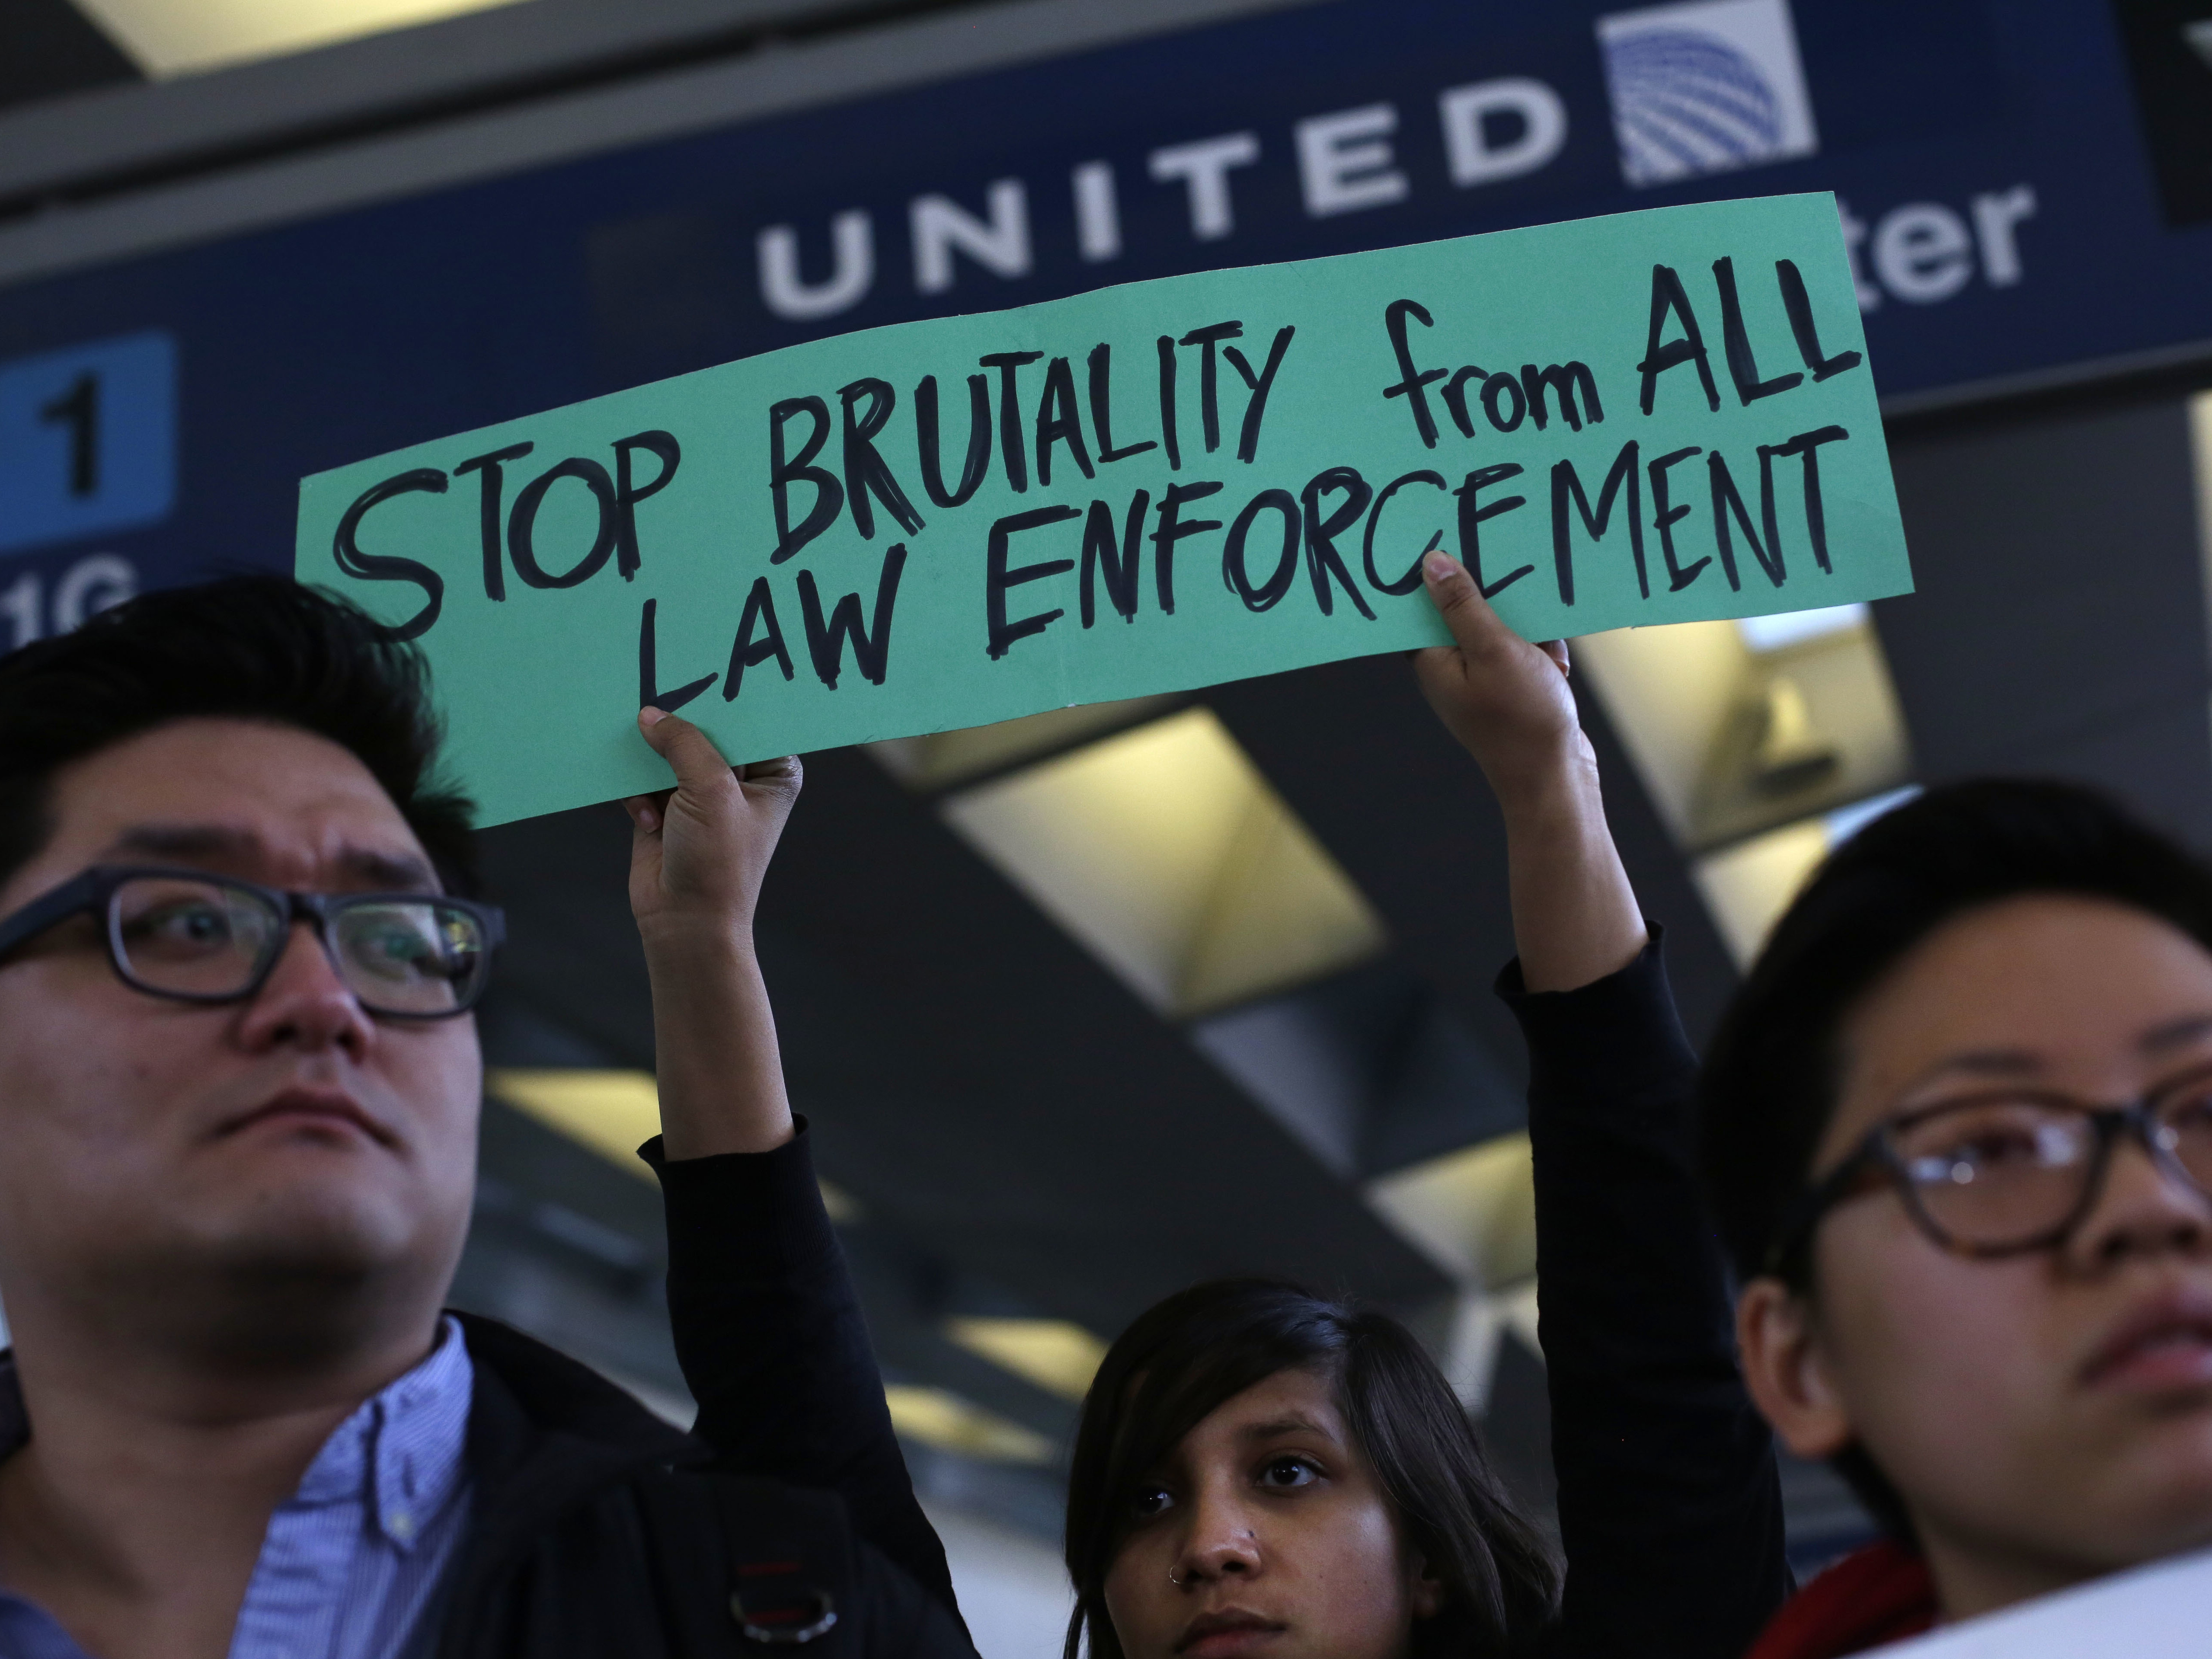 Demonstrators protest United Airlines at O'Hare International Airport on April 11, 2017 in Chicago, Illinois. (Photo: AFP/Getty Images, Joshua Lott)